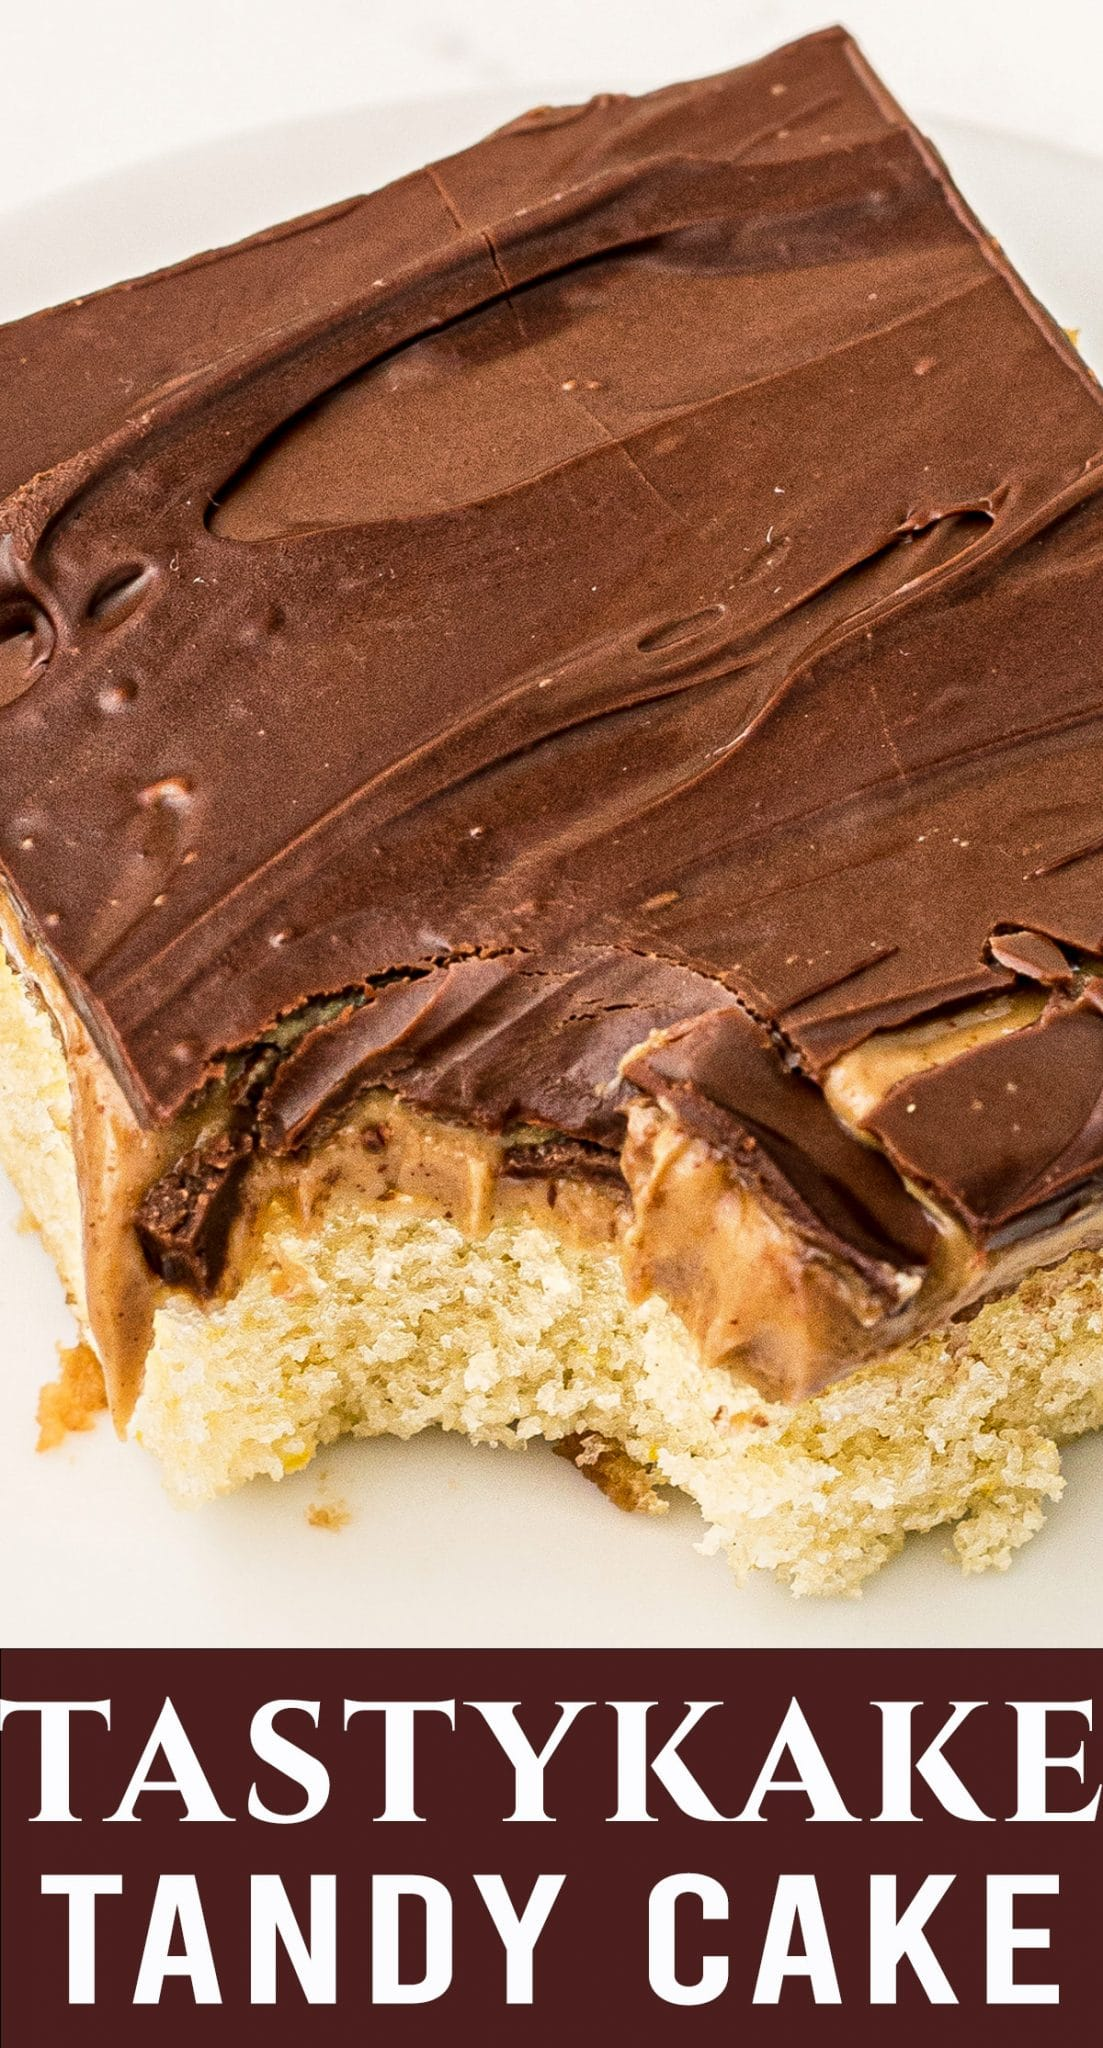 A copycat of the original Tastykake Tandy Cake! Peanut butter and chocolate toppings sit on top of a fluffy white cake. Makes a large sheet cake to serve a crowd. via @thebestcakerecipes